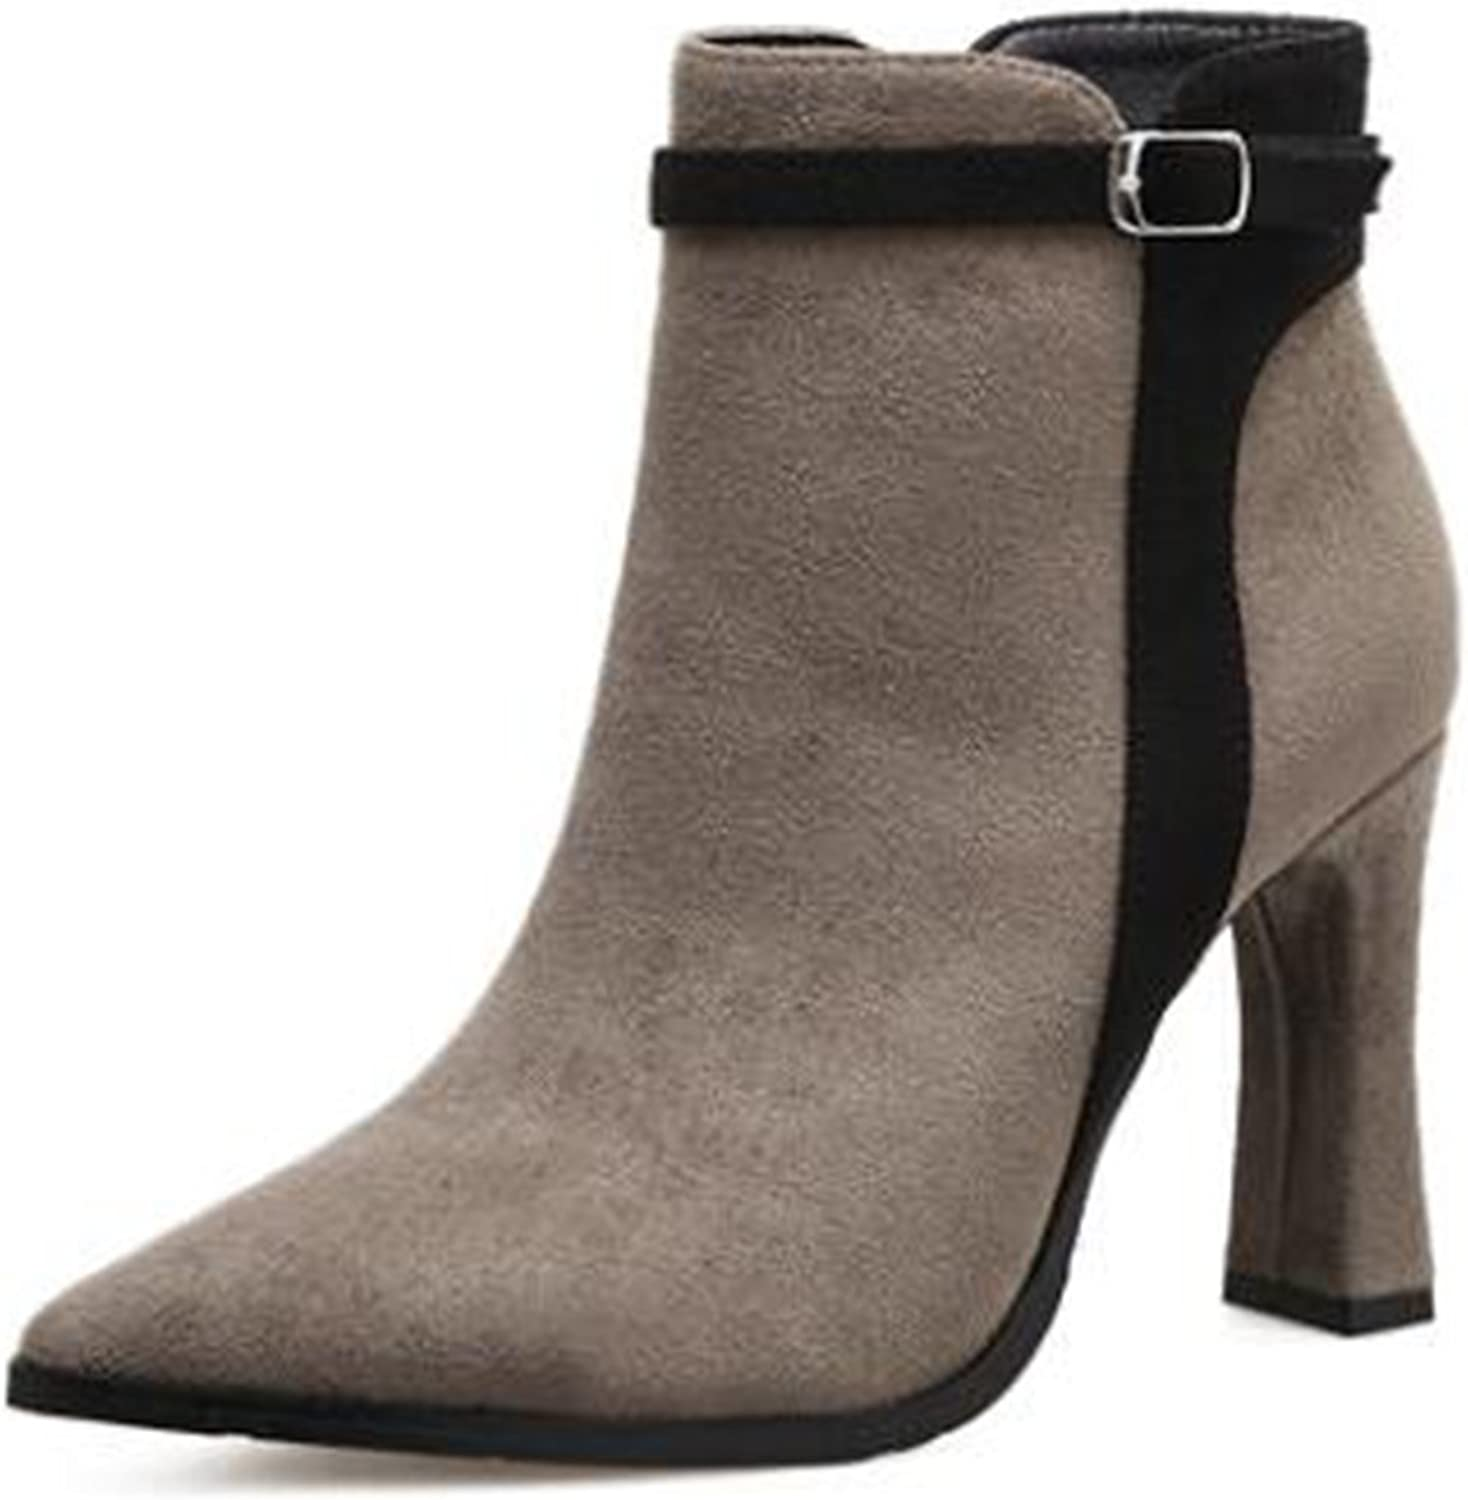 COVOYYAR Women's Winter Buckle Pointed Toe Thick Heel Ankle Boots High Heel shoes